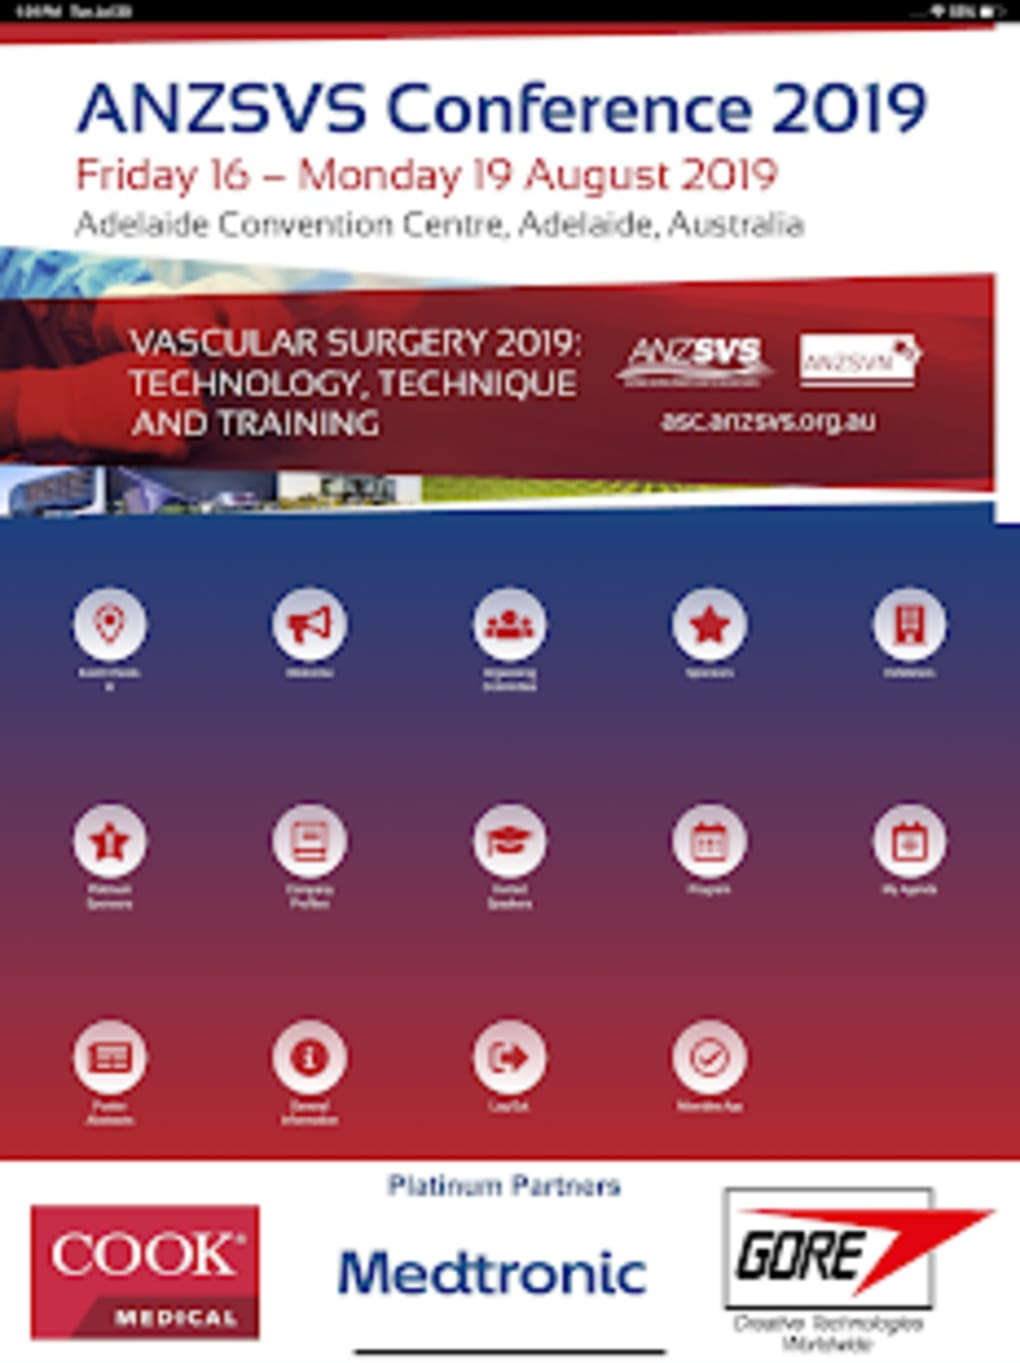 ANZSVS 2019 Conference for Android - Download